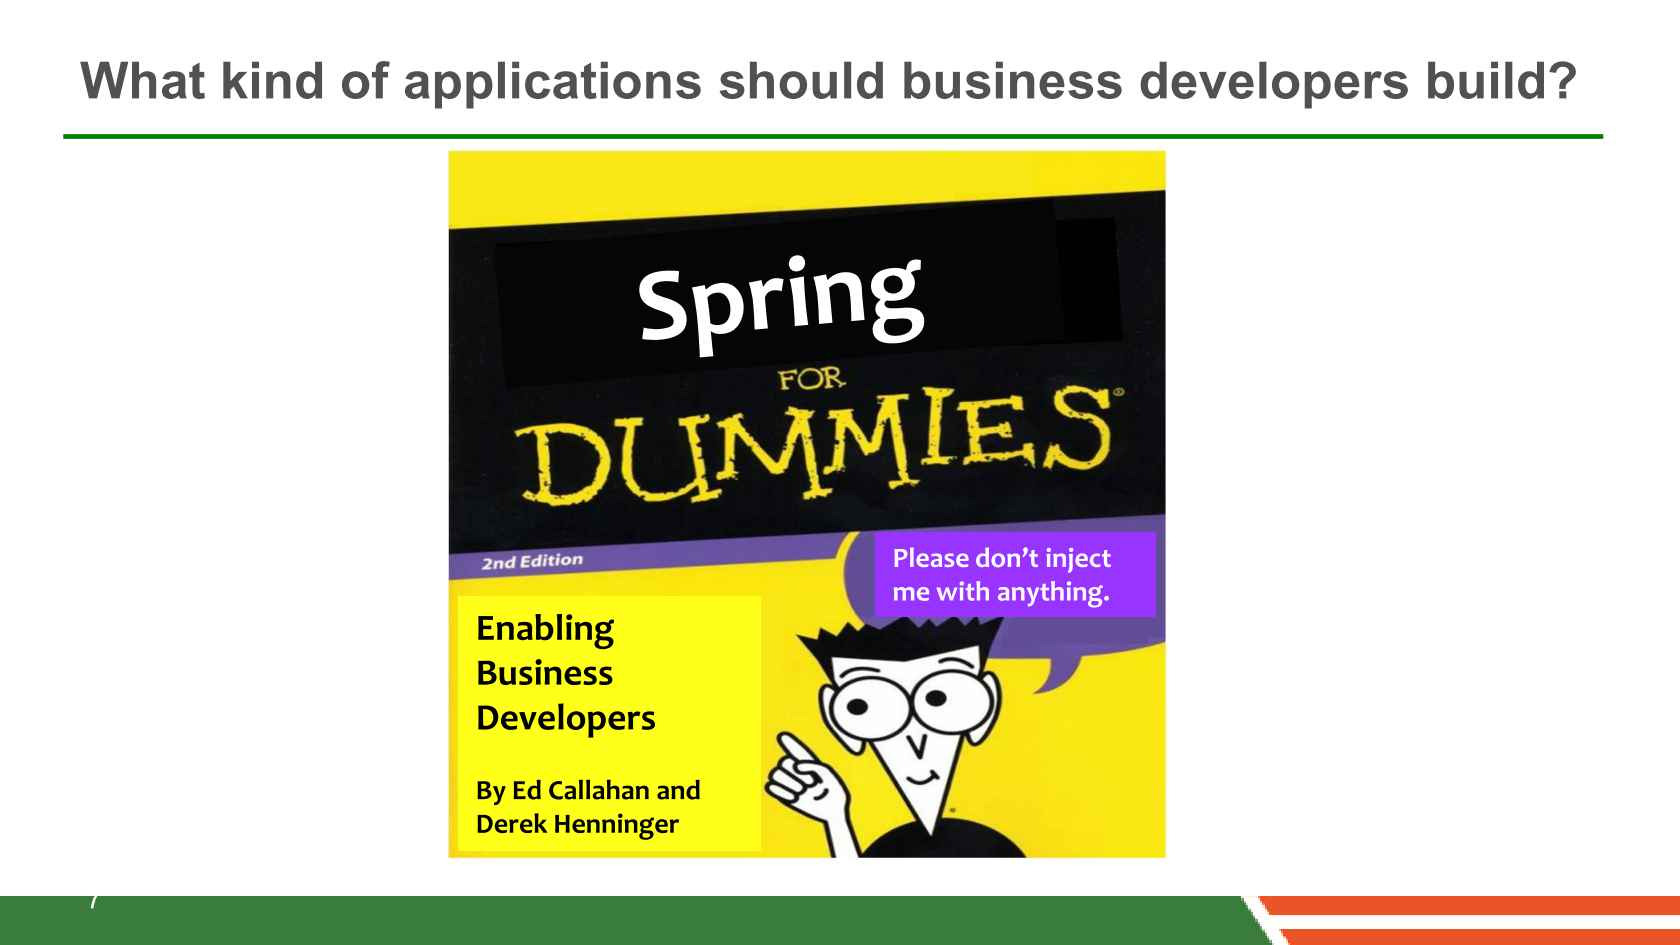 Spring for Dummies